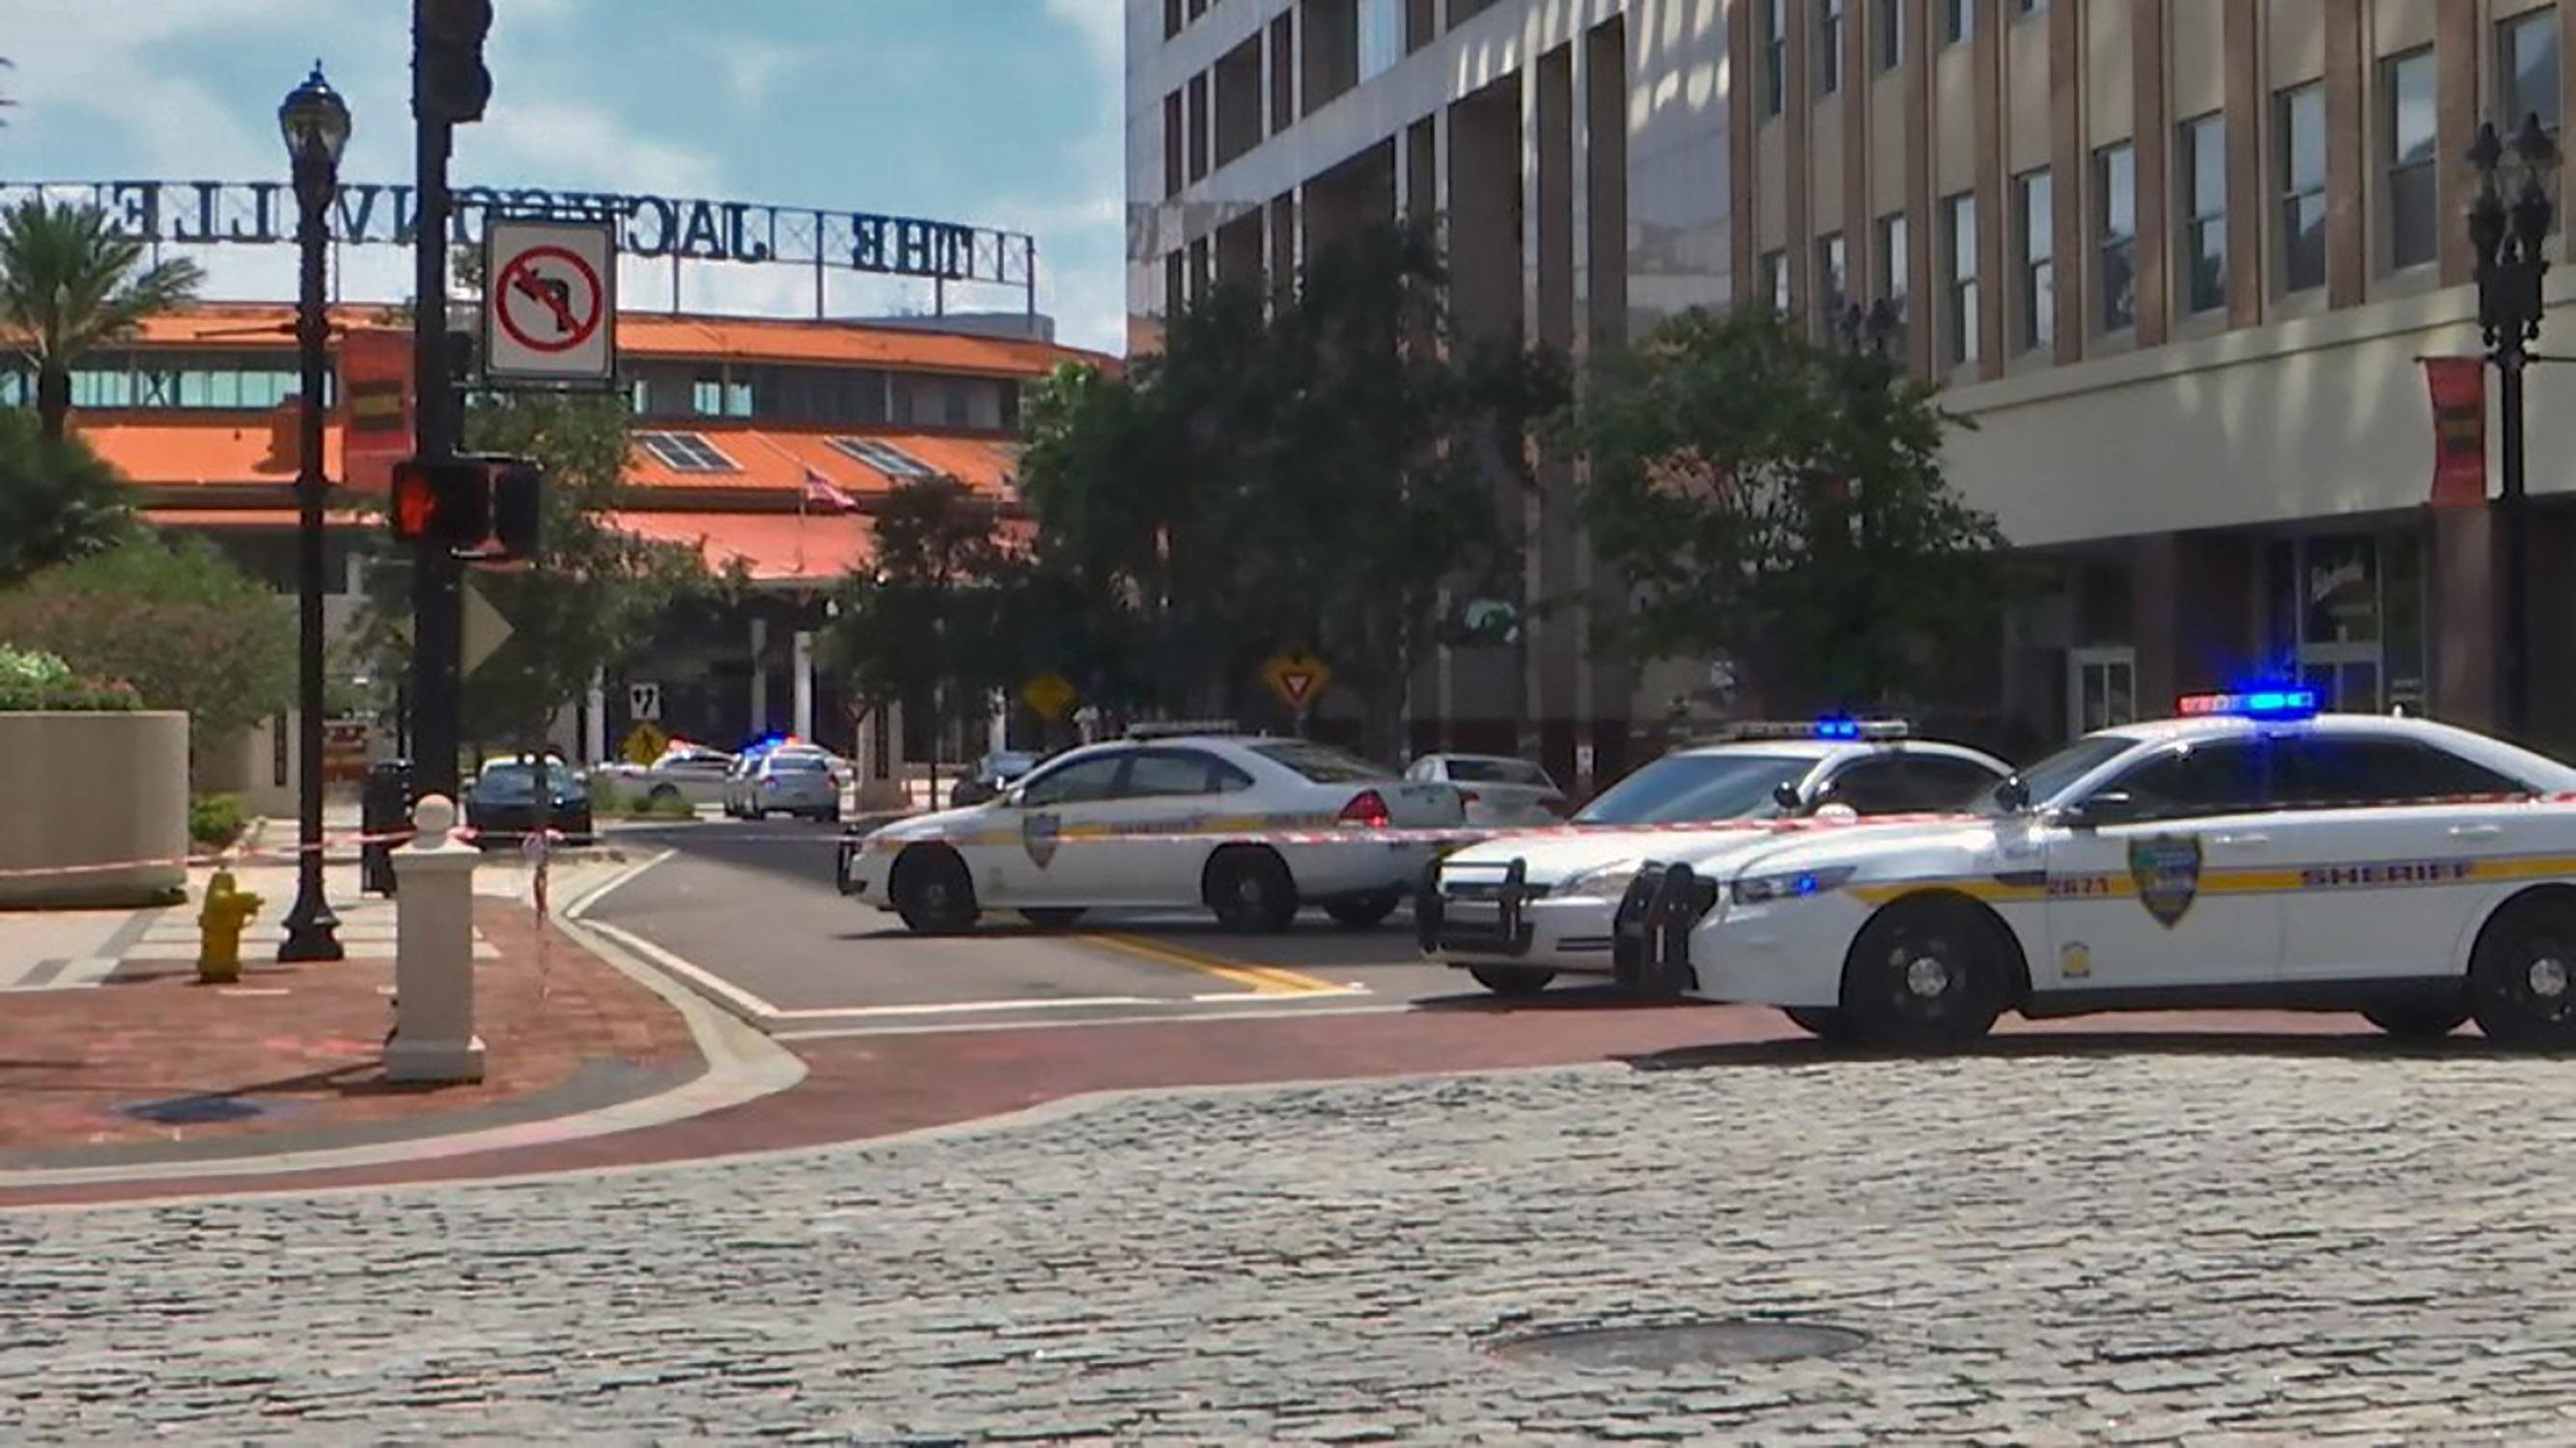 Four people are feared dead after an angry gamer opened fire at a Madden NFL event